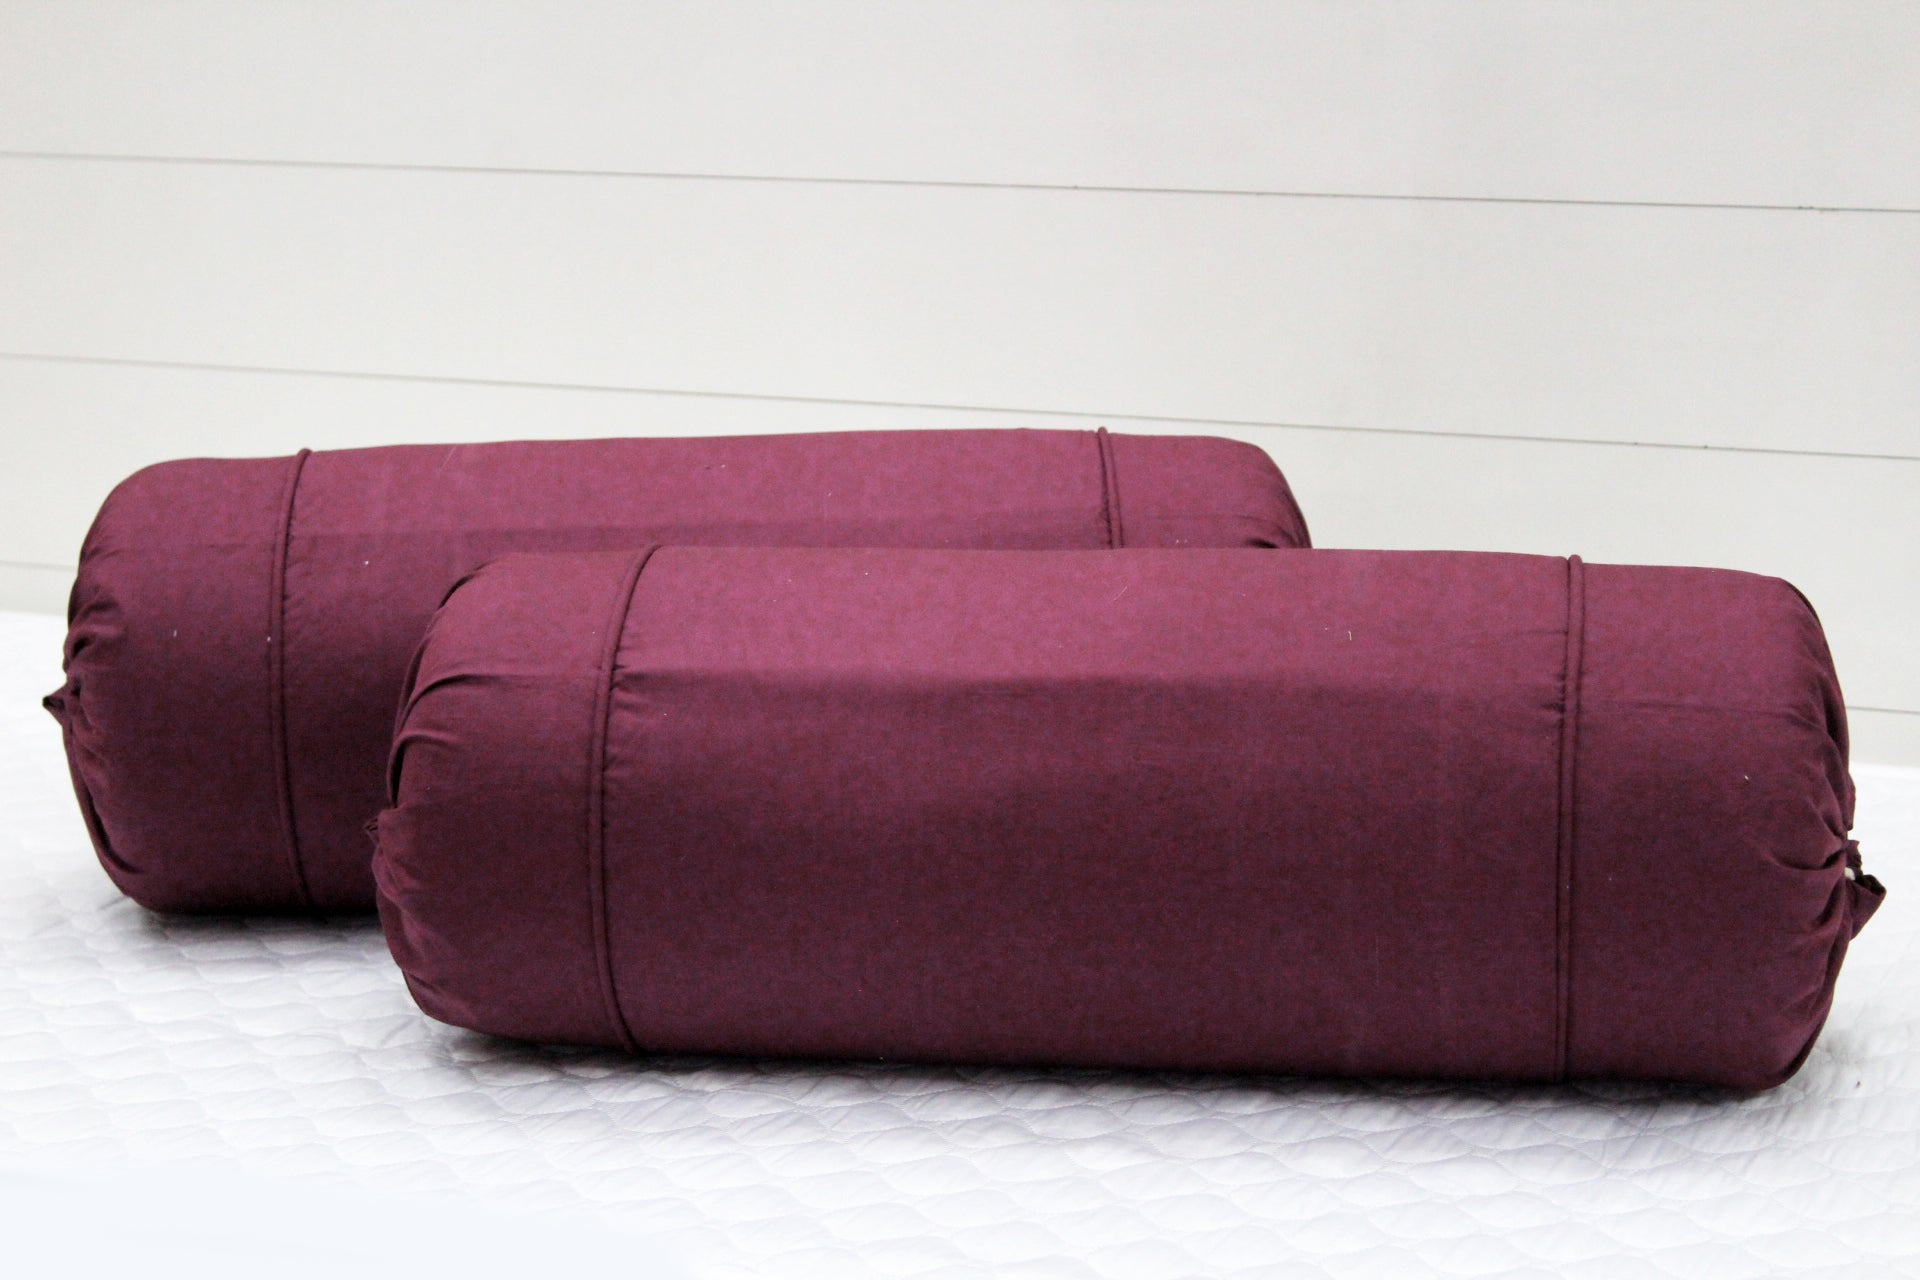 AURAVE Excel Cotton 2 Pieces Plain Bolster Cover Set - 15 X 30 inches, Burgundy